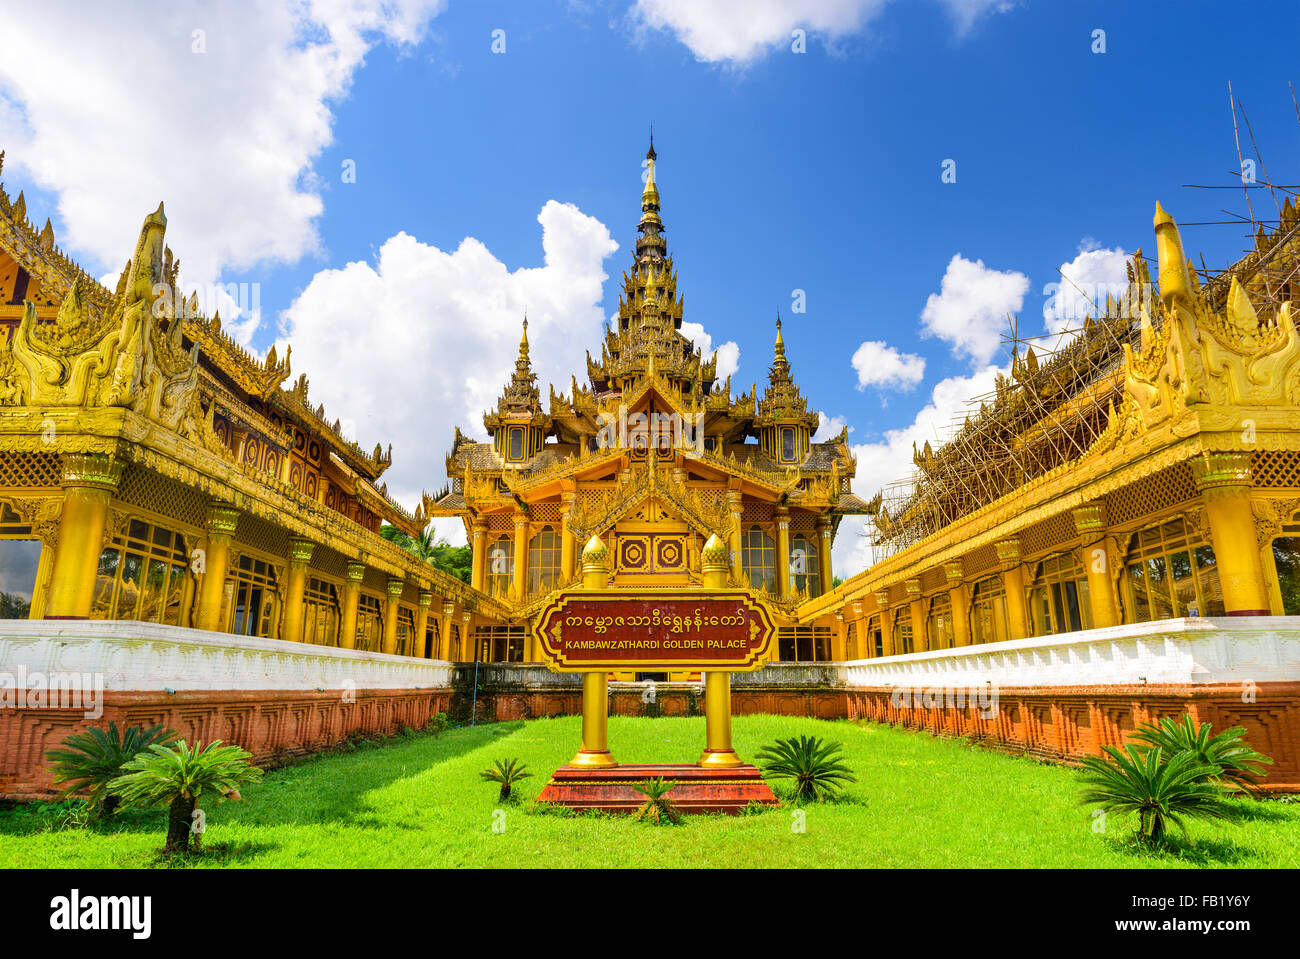 golden palace.com